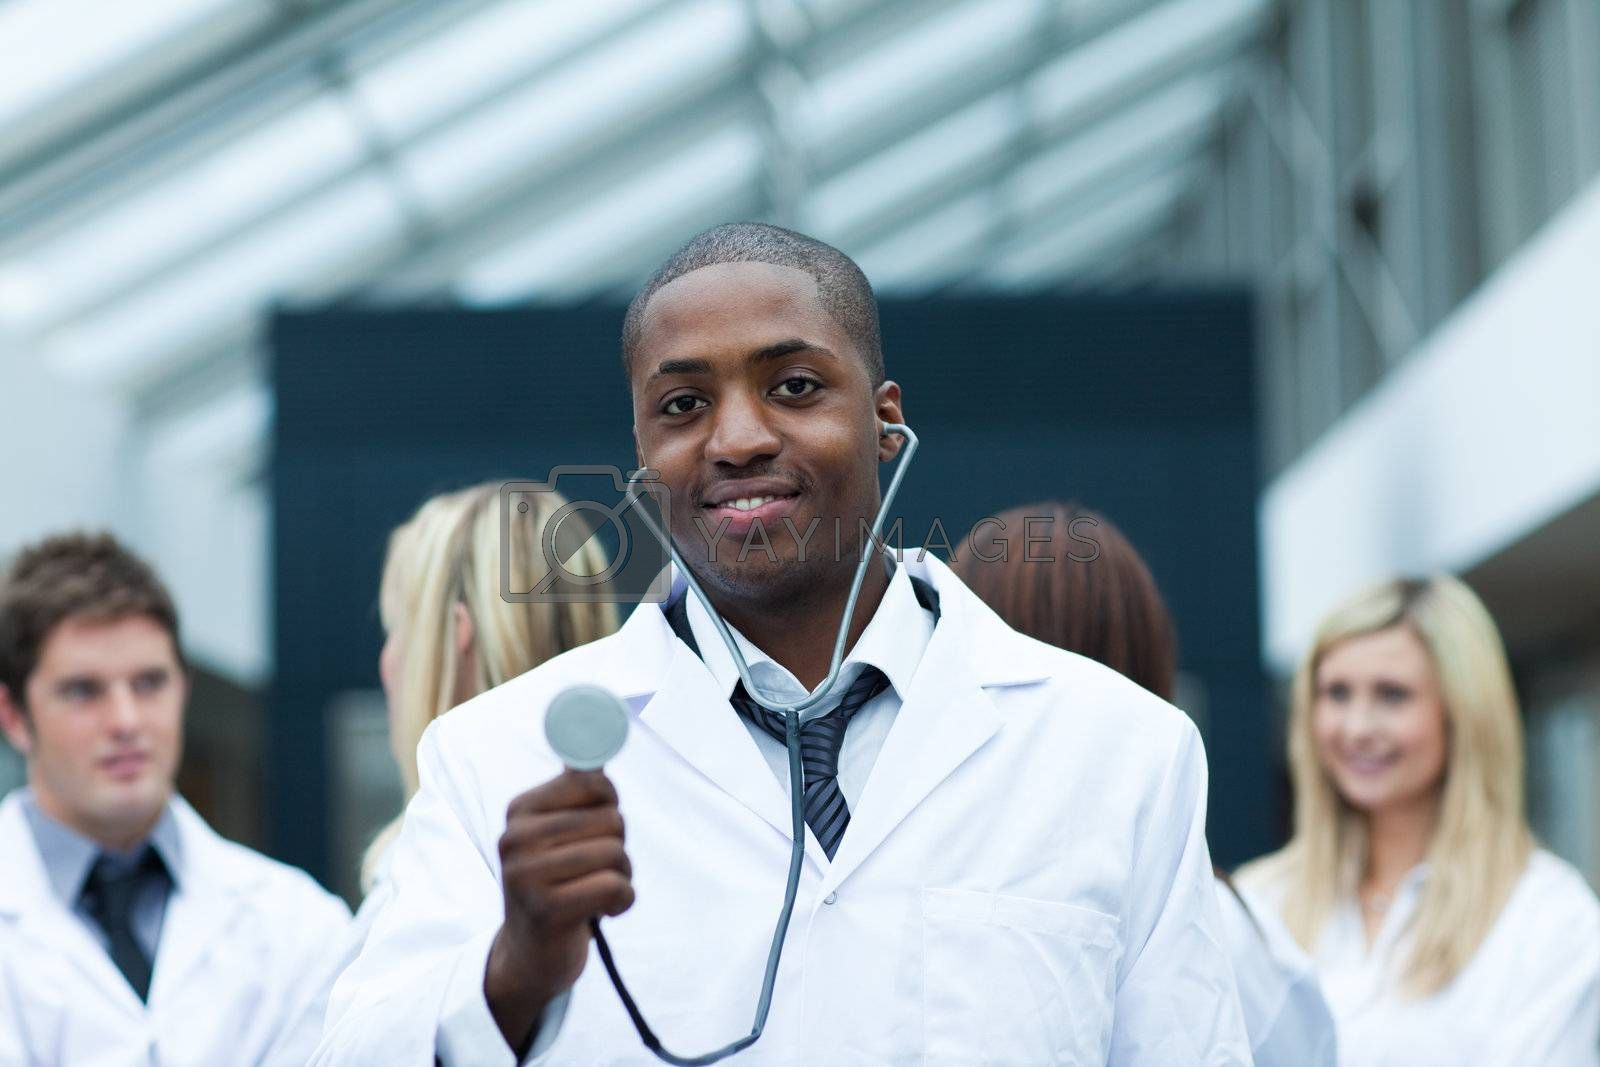 Ethnic doctor with his team in the background smiling at the camera